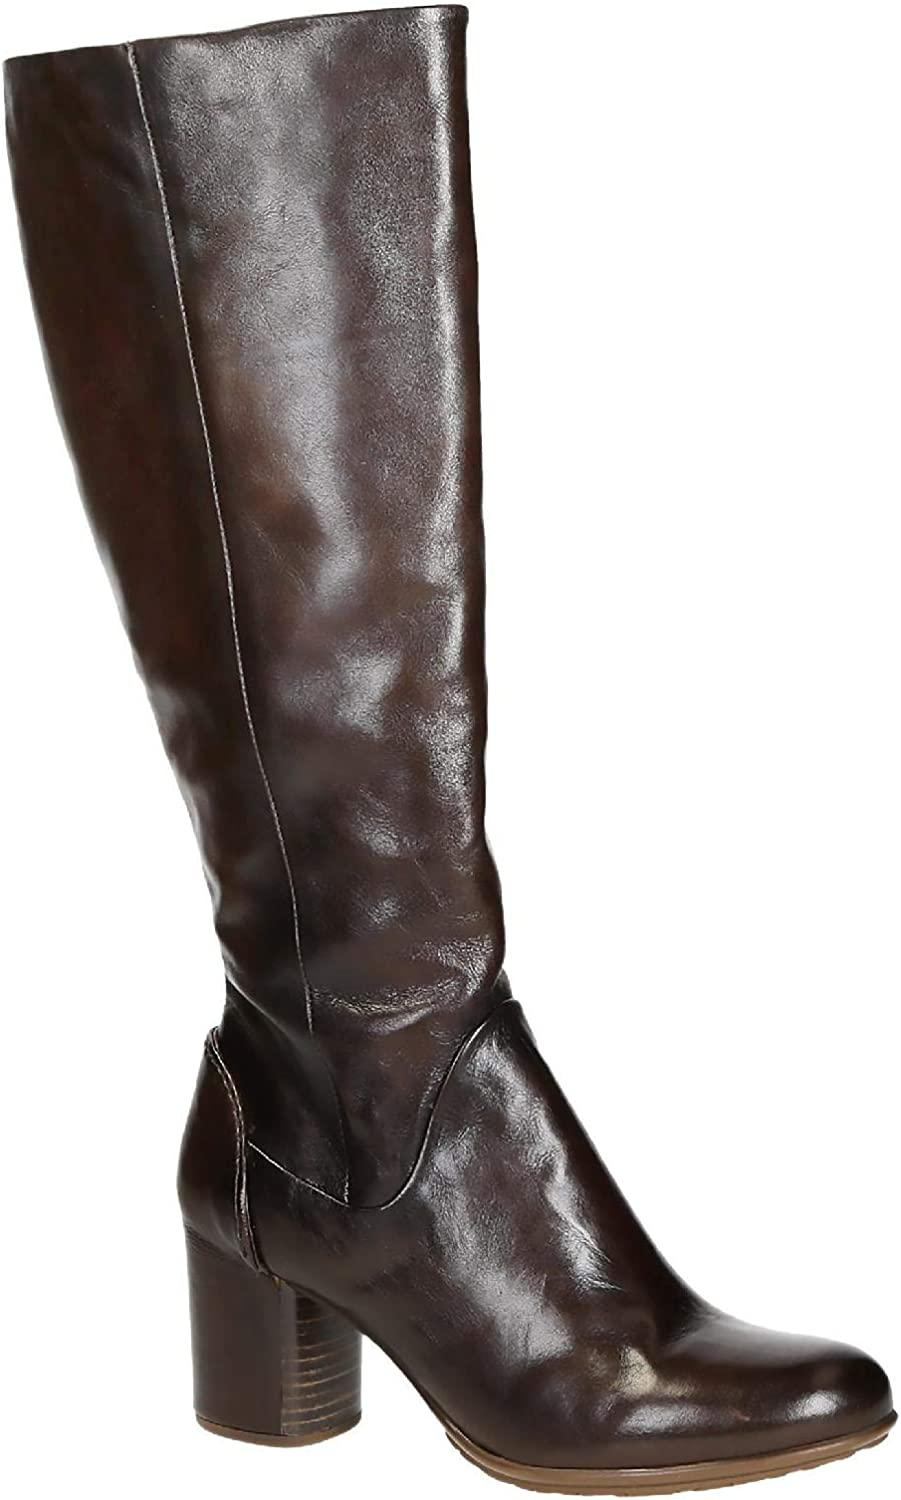 Calf Leather Knee High Boots Shoes